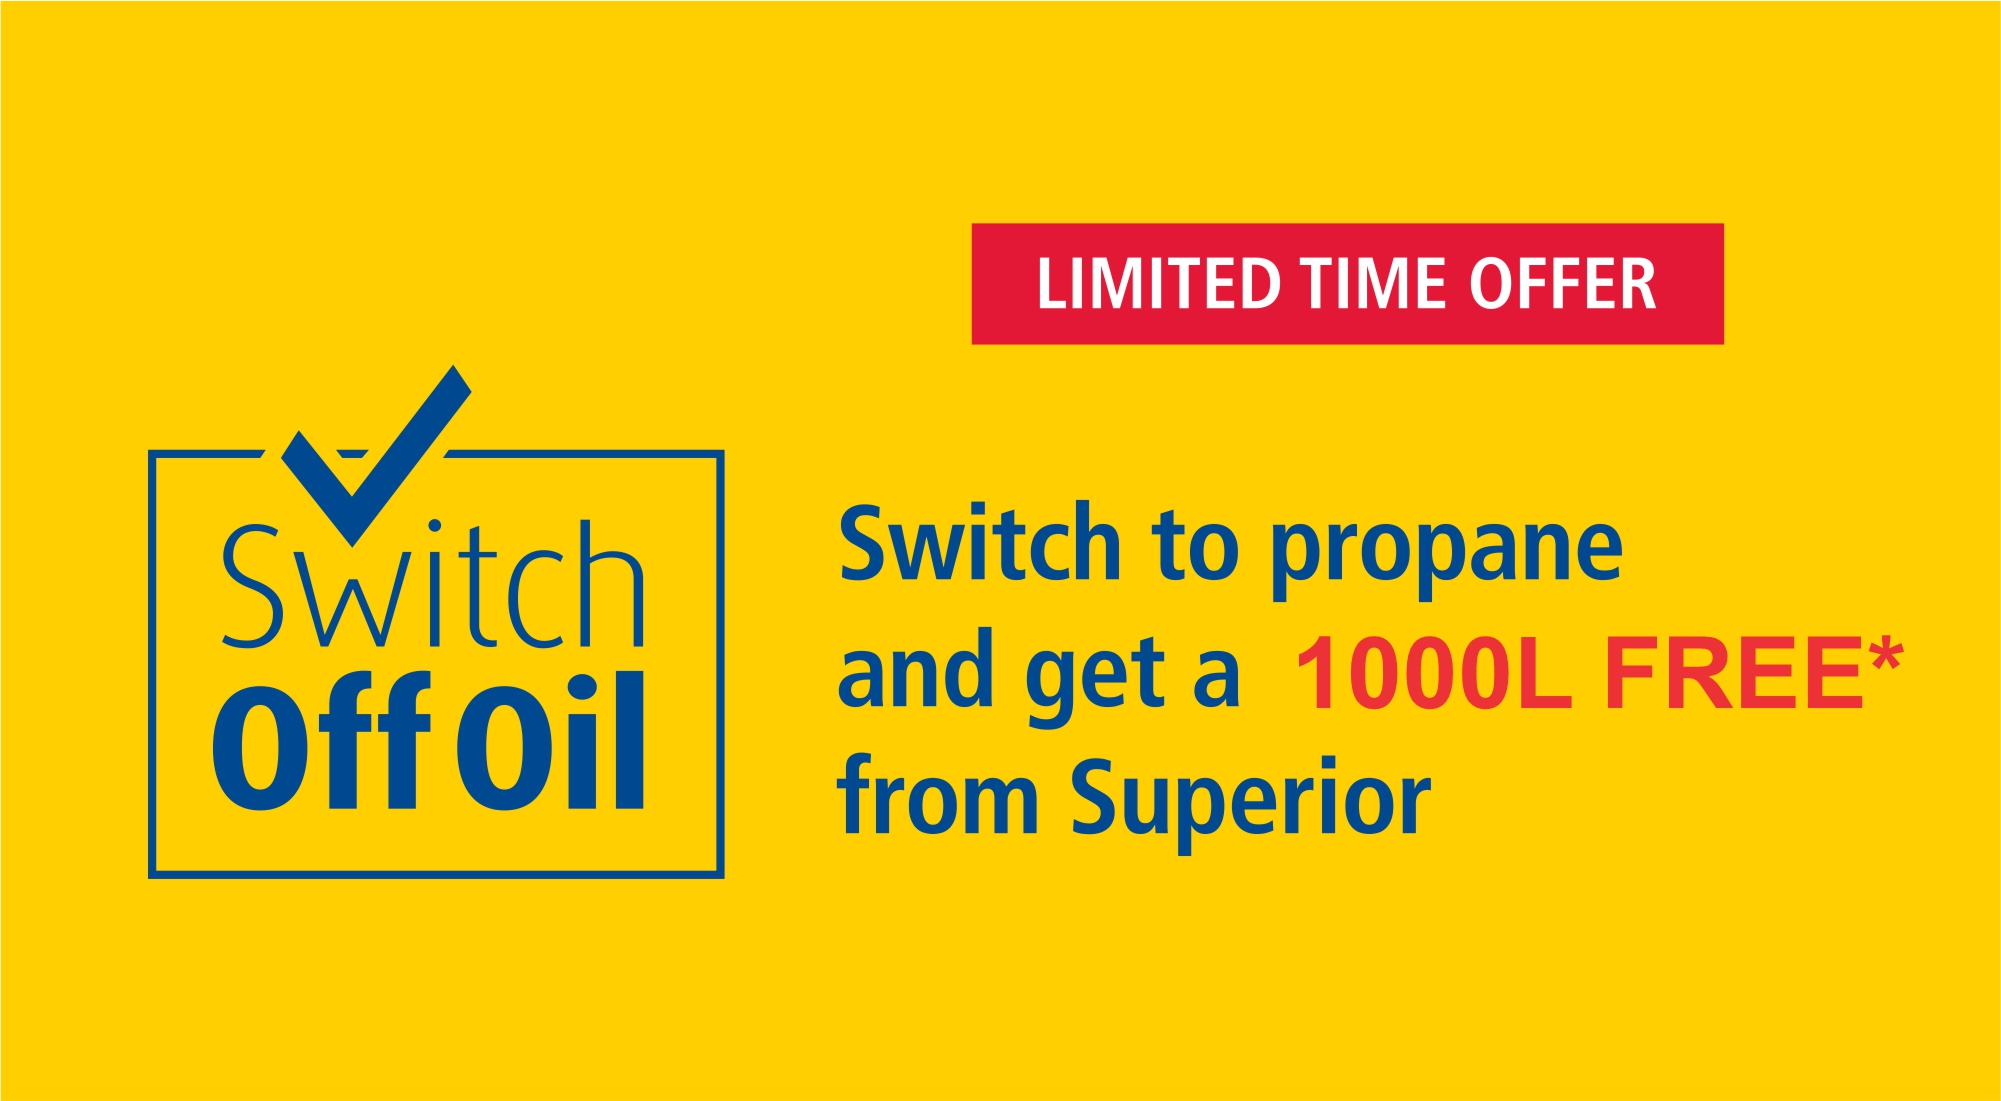 SWITCH OFF OIL - Superior Propane Arctica Heating and Cooling